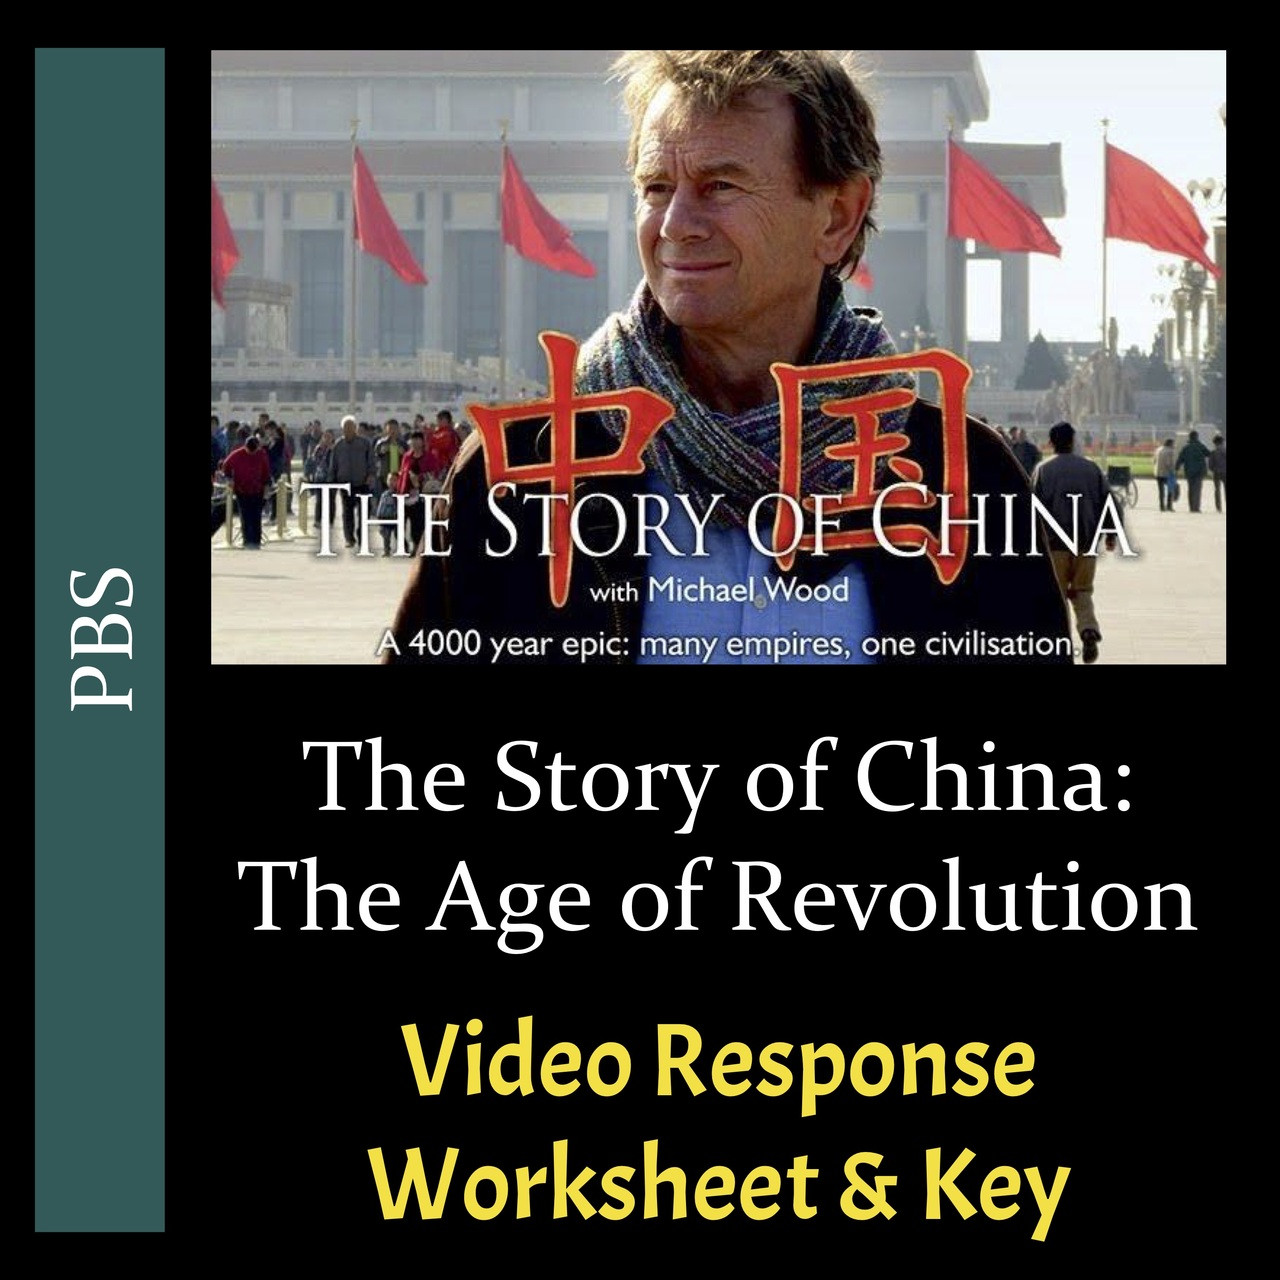 small resolution of The Story of China - Episode 6: The Age of Revolution - Video Response  Worksheet \u0026 Key (Editable) - Amped Up Learning